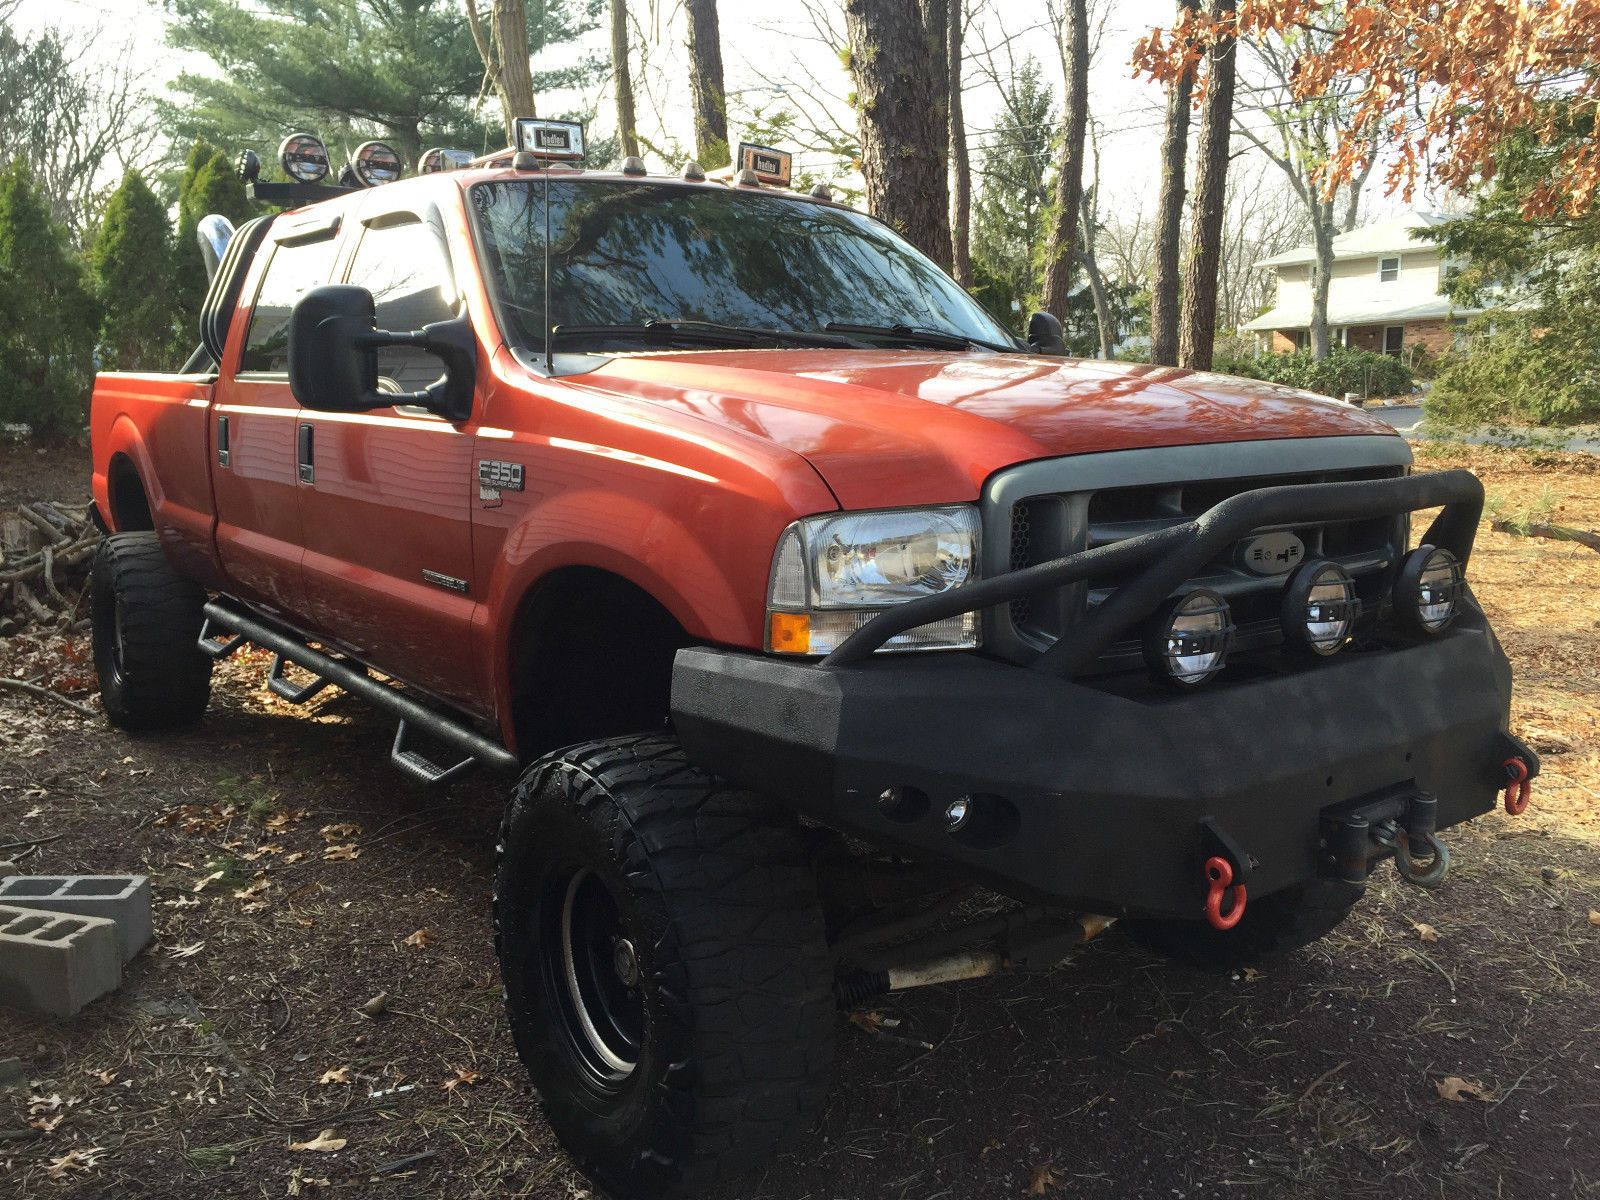 2000 FORD F 350 4X4 Powerstroke CREW CAB Monster TRUCK